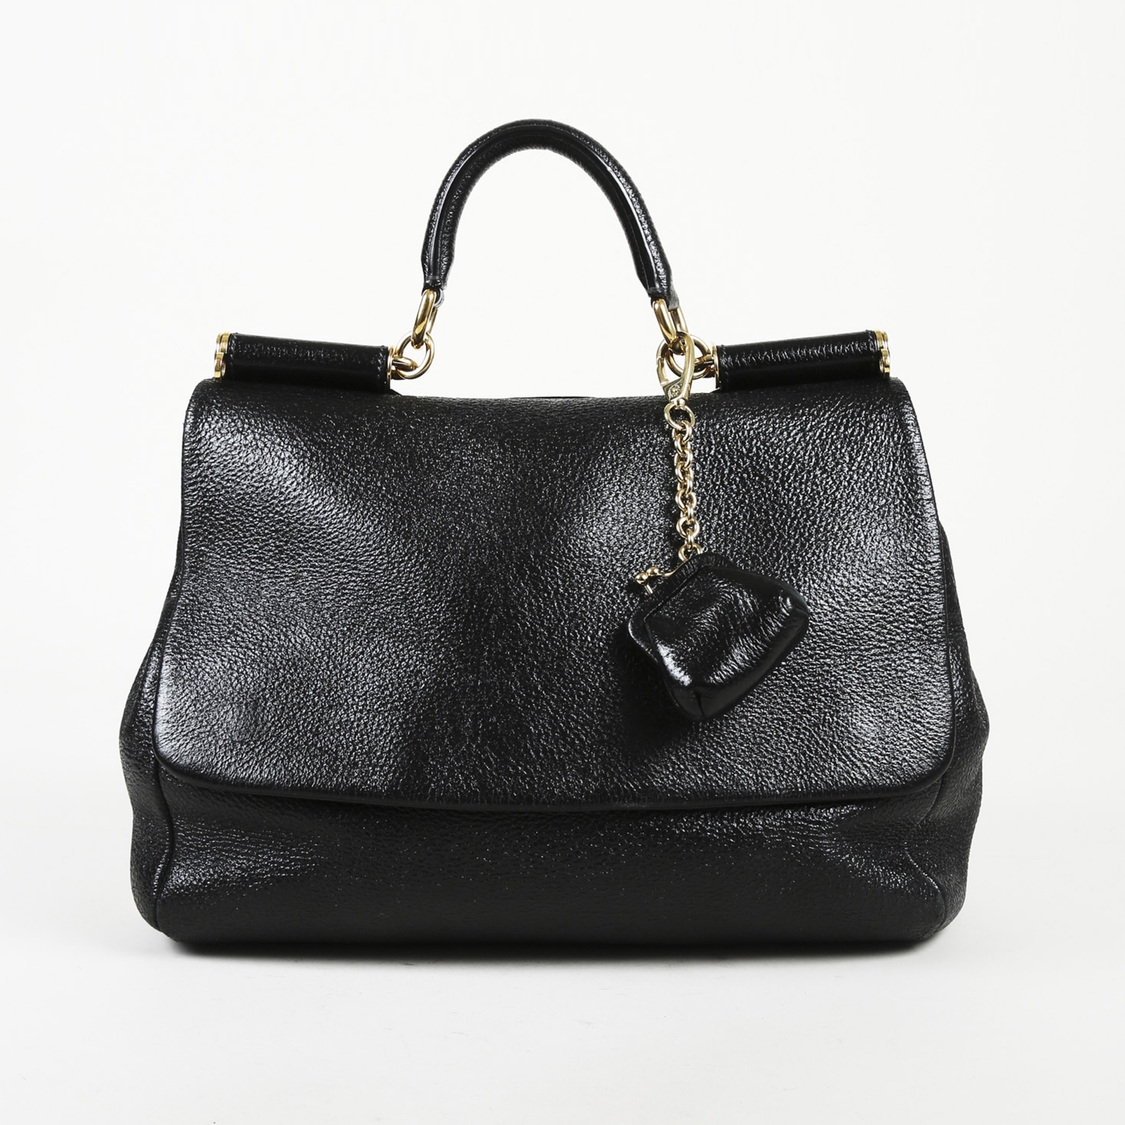 Details about Dolce   Gabbana Leather Large